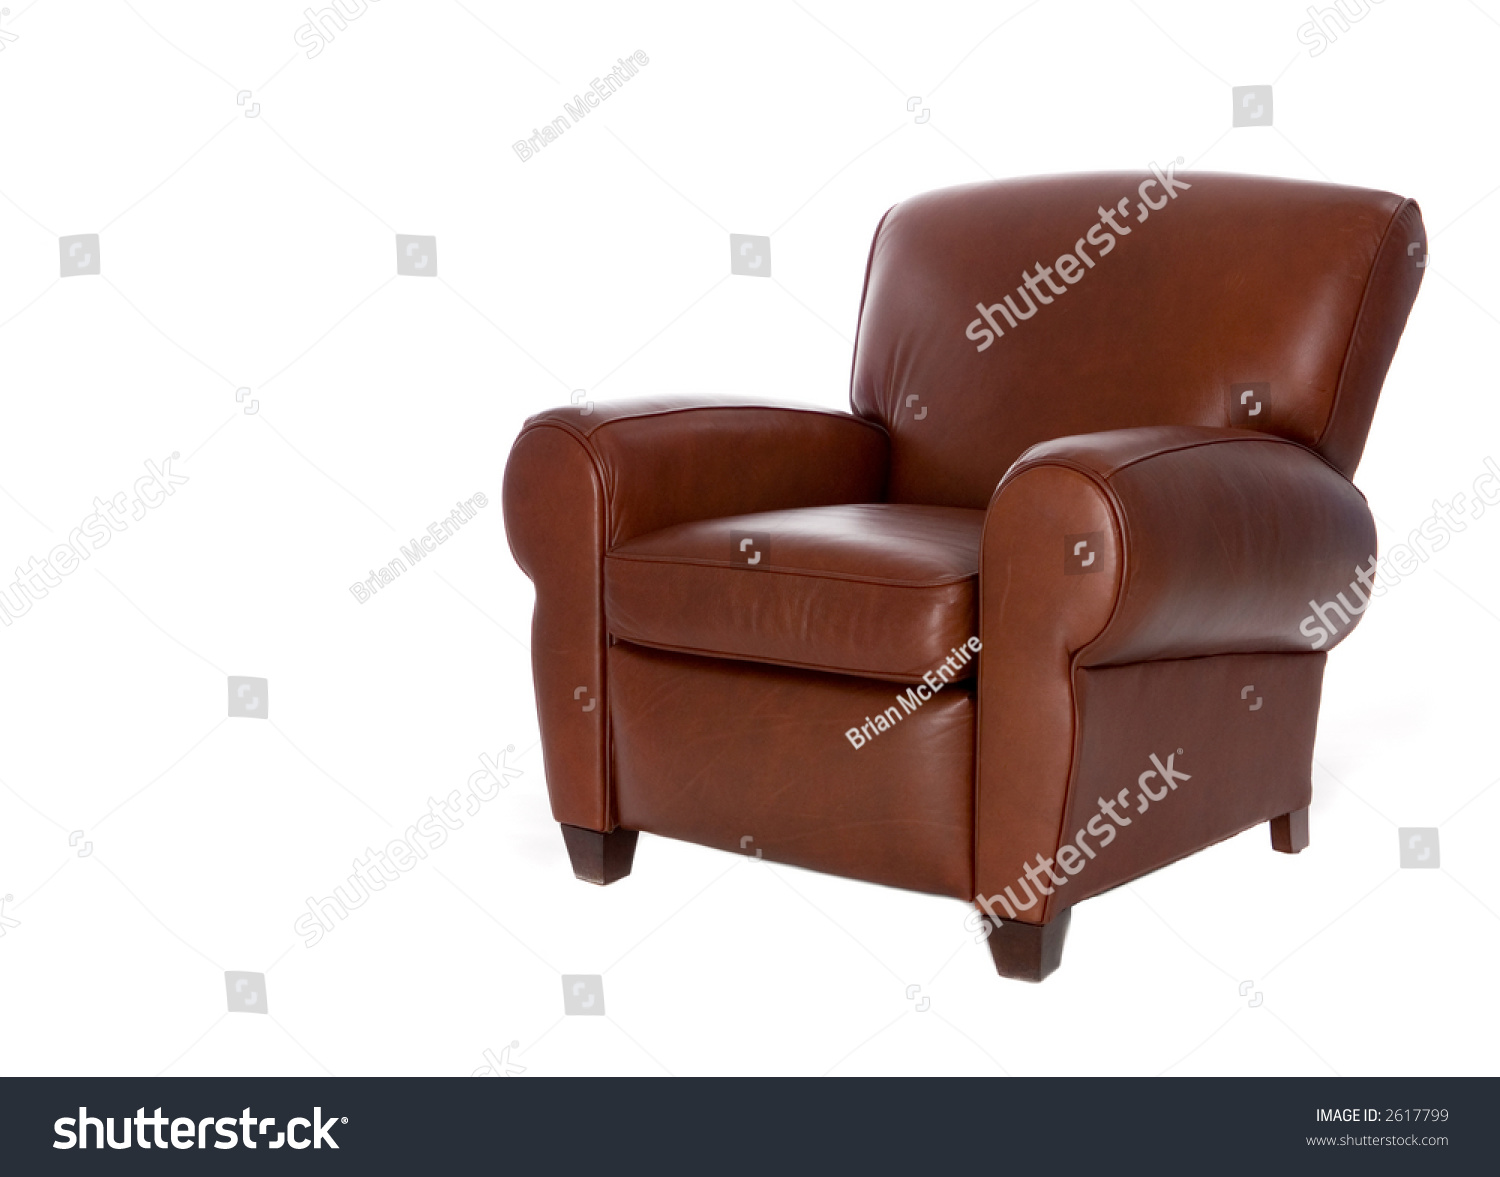 Modern Sleek Leather Recliner Chair Isolated Royalty Free